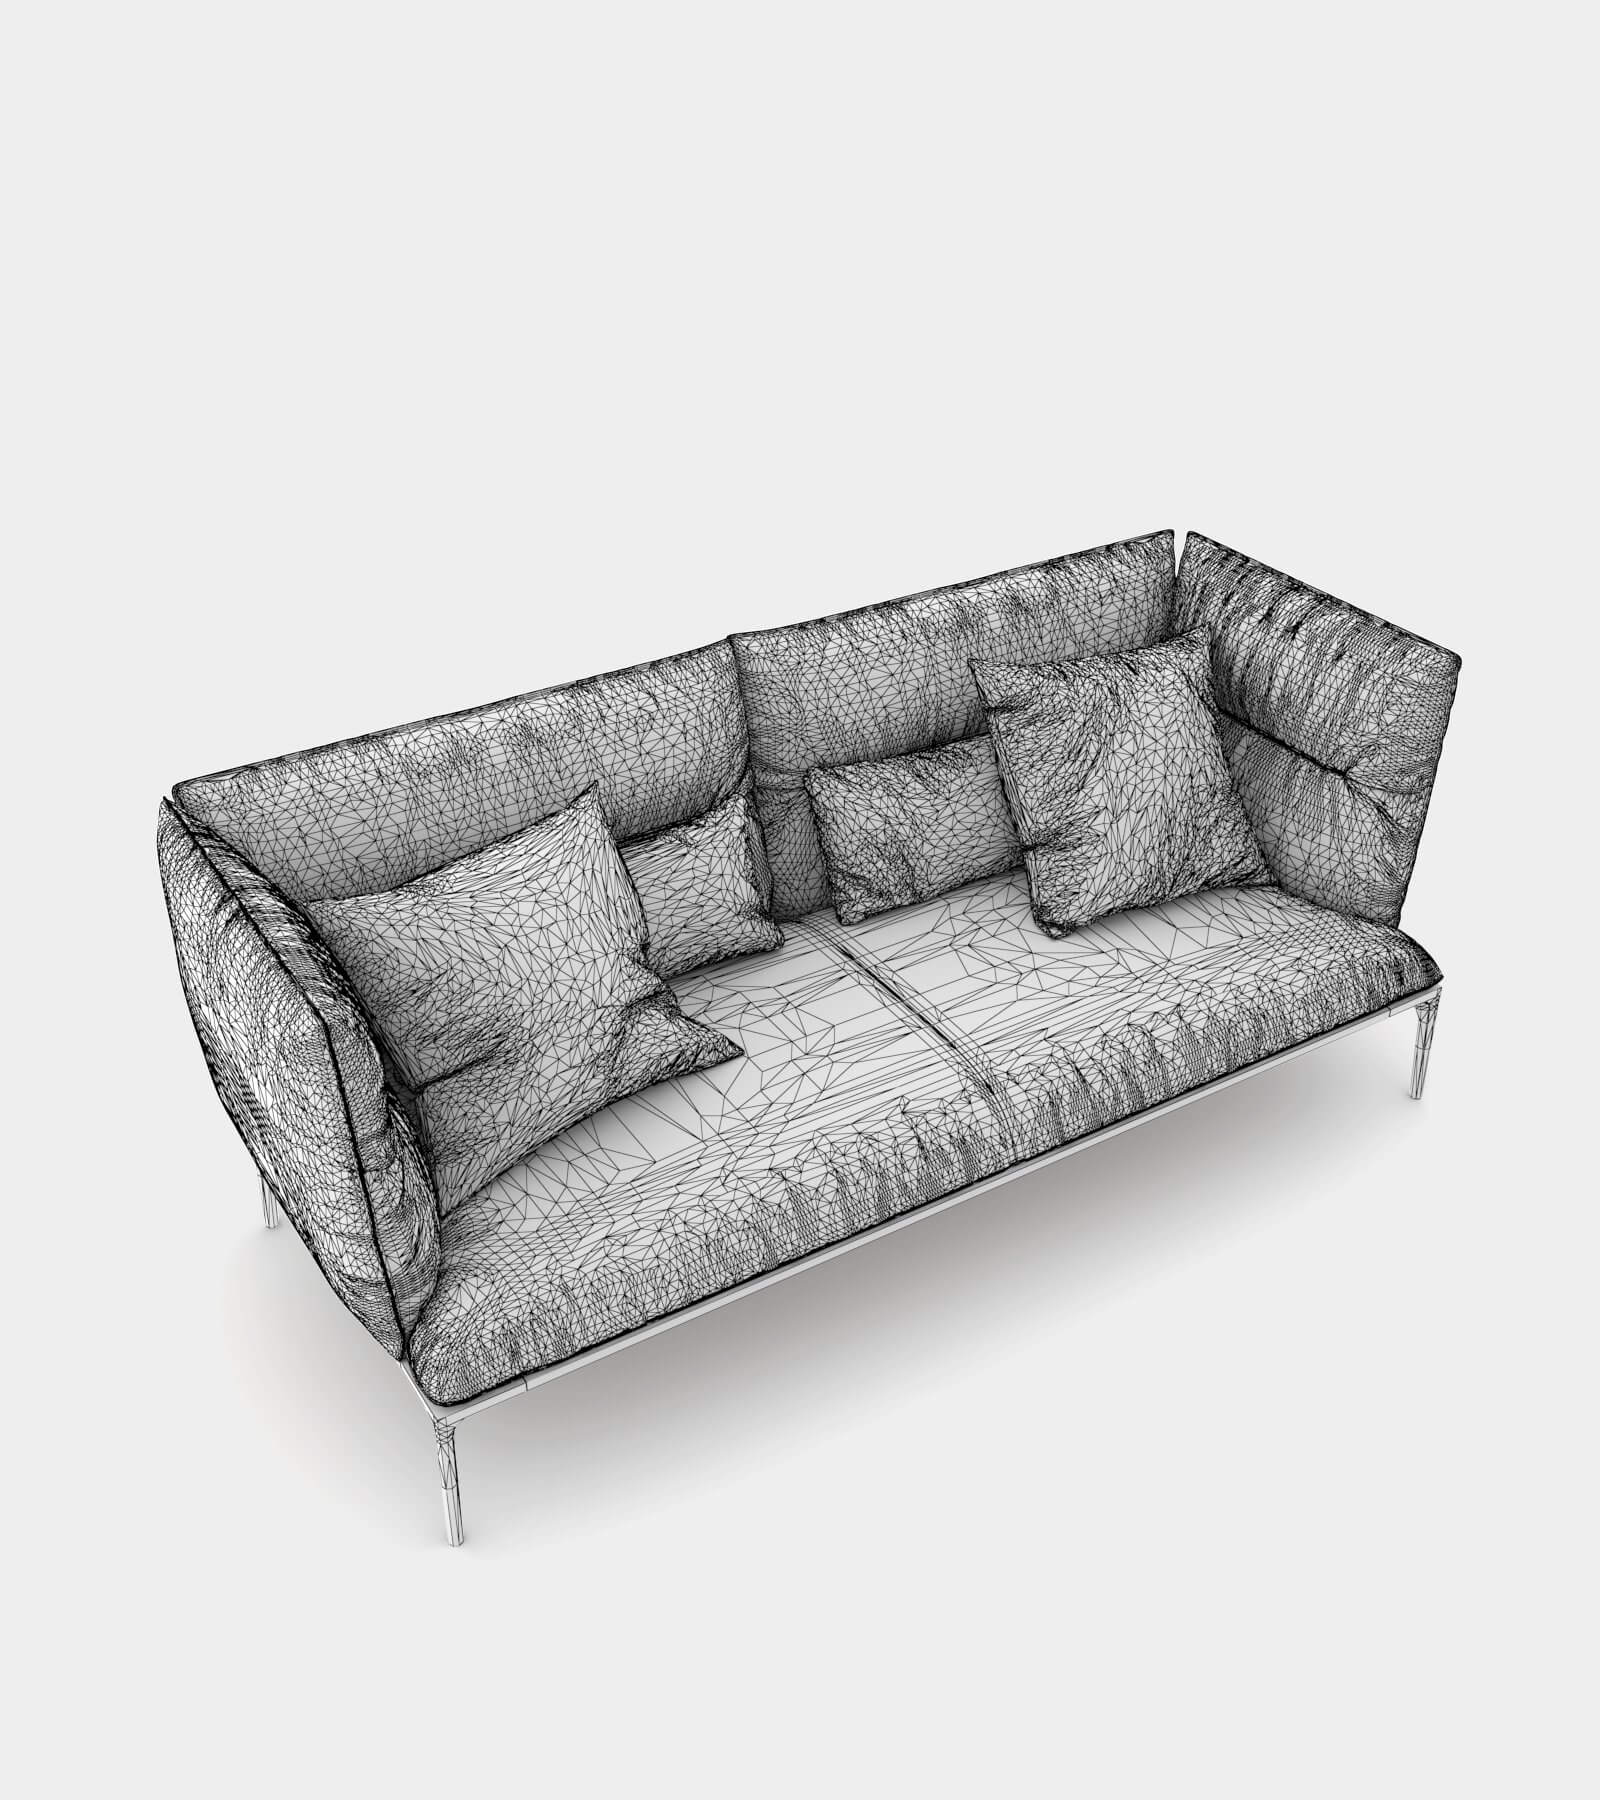 Sofa with high backrest-2-wire 3D Model